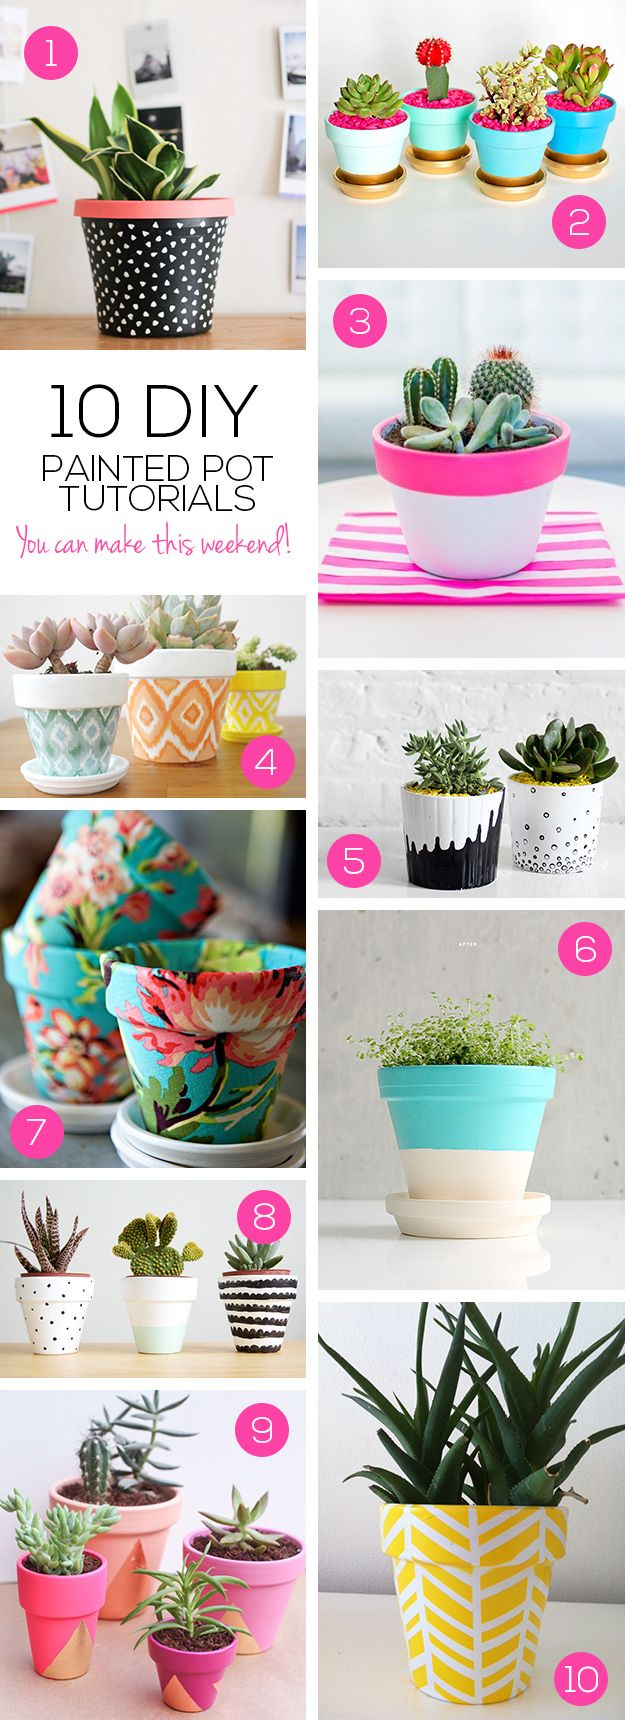 10 DIY Plant Pots You Can Create This Weekend